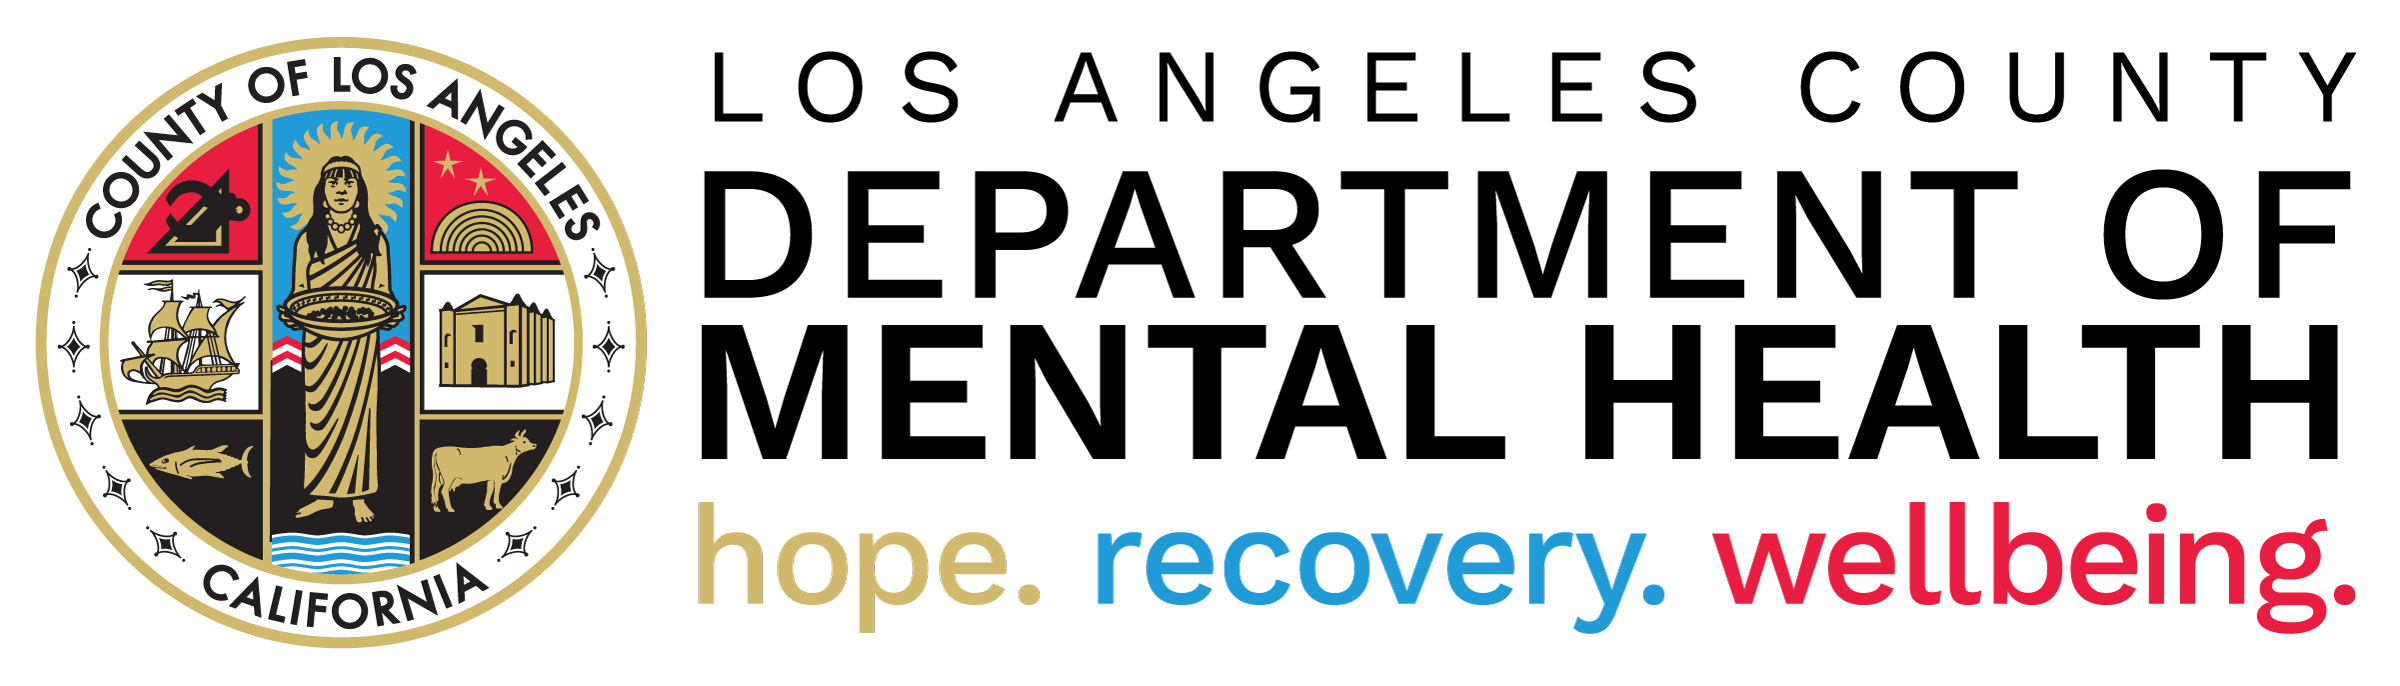 LA County Dept Mental Health